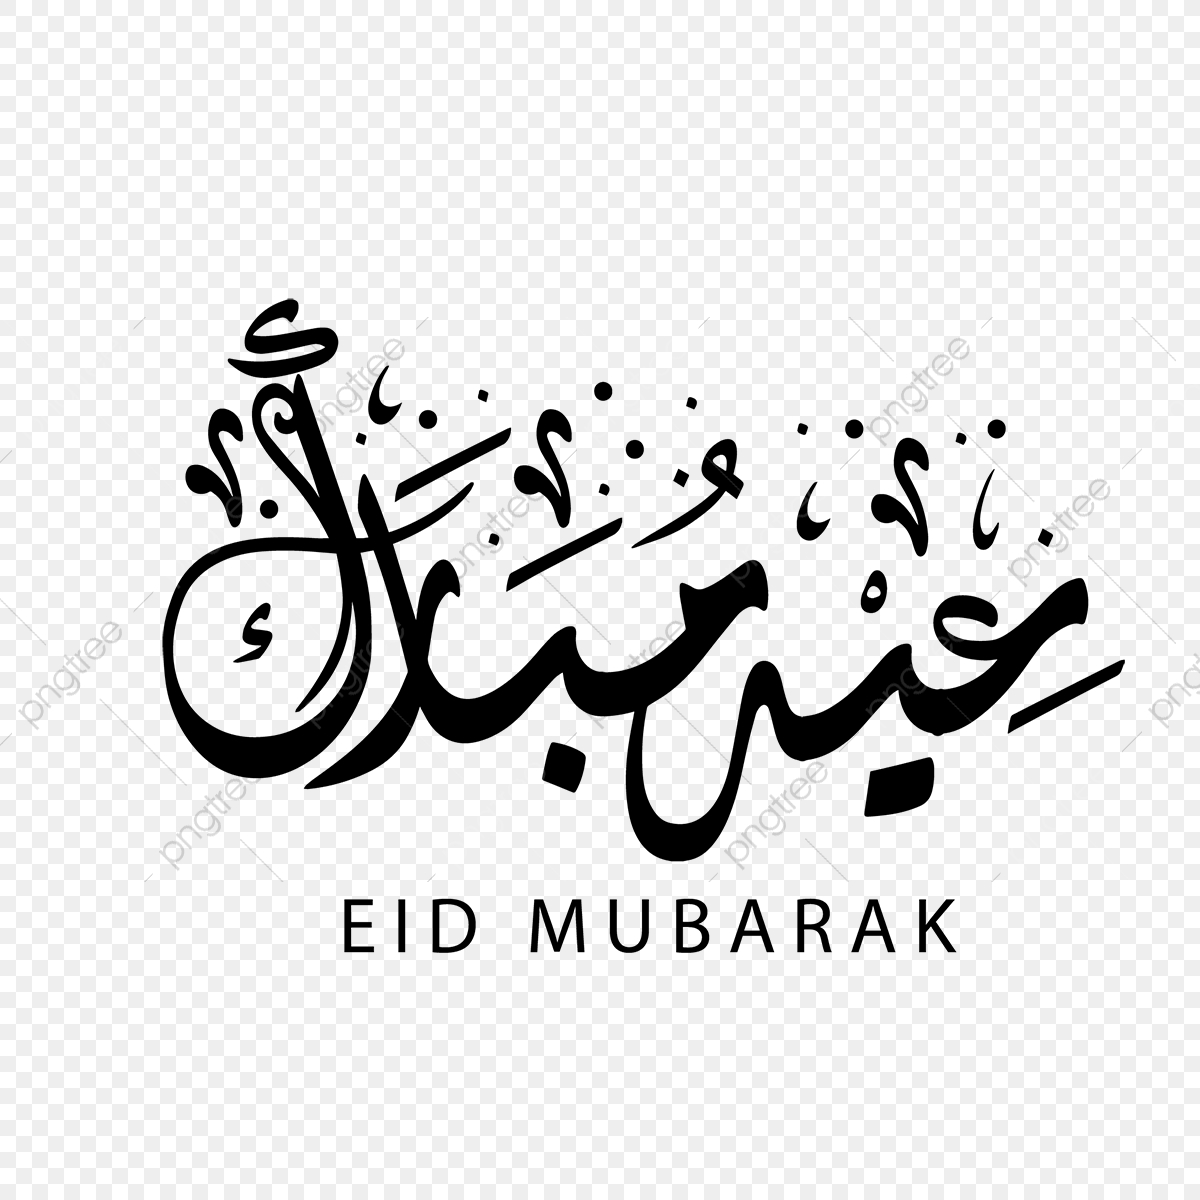 Eid Mubarak Png Images Vector And Psd Files Free Download On